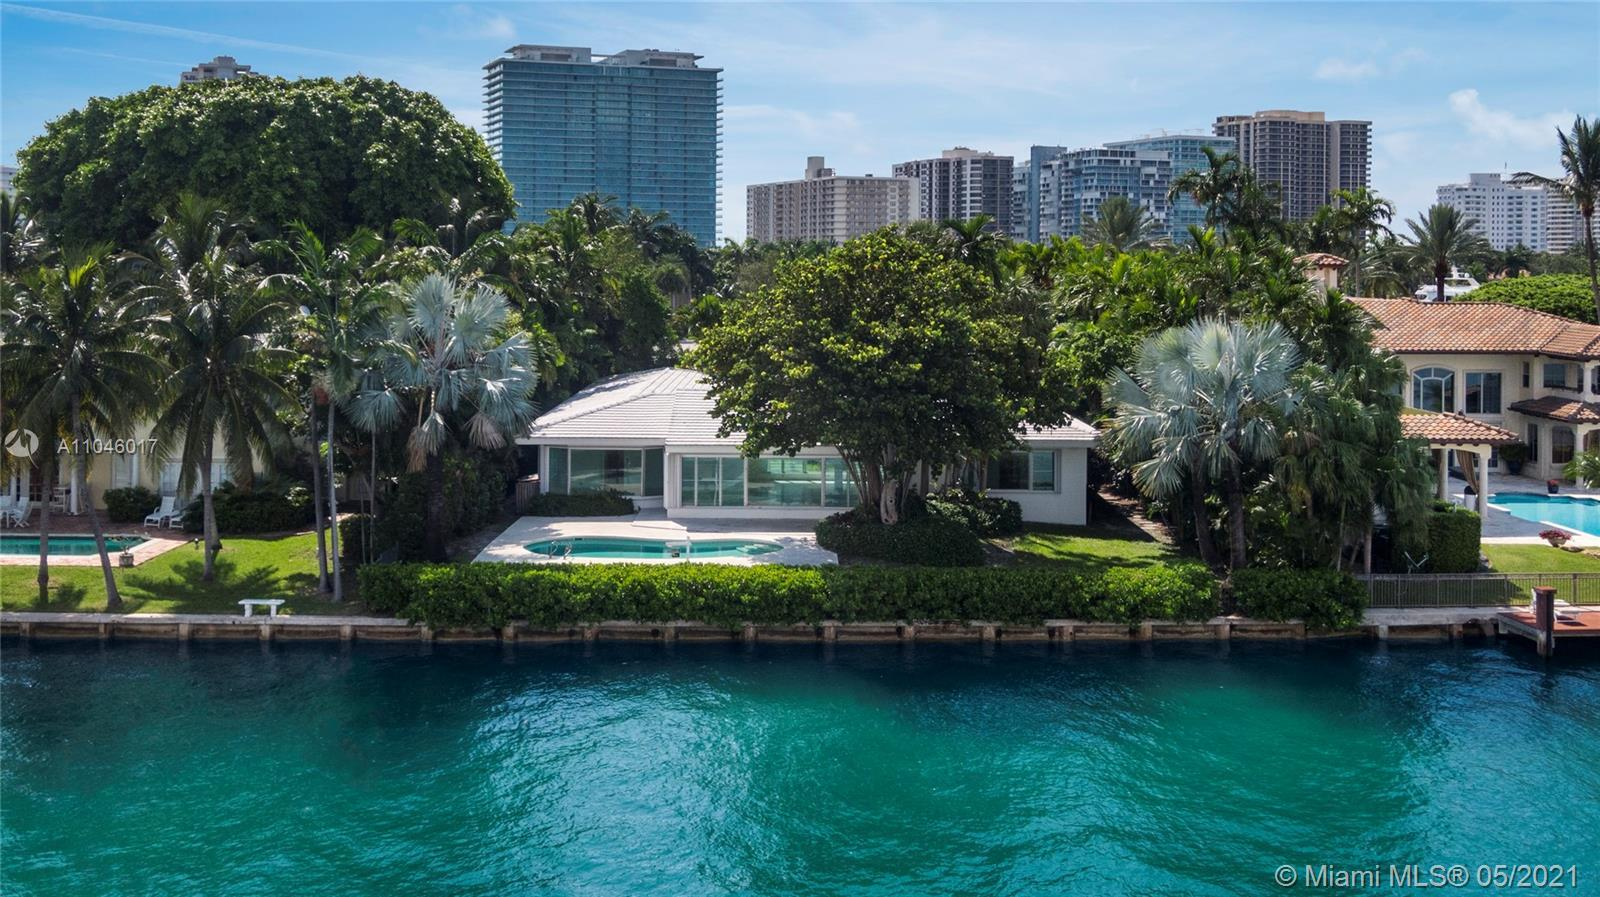 EXPERIENCE THE LUXURY, PRIVACY, AND SECURITY OF LIVING IN BAL HARBOUR ON A TROPHY RESIDENTIAL SITE